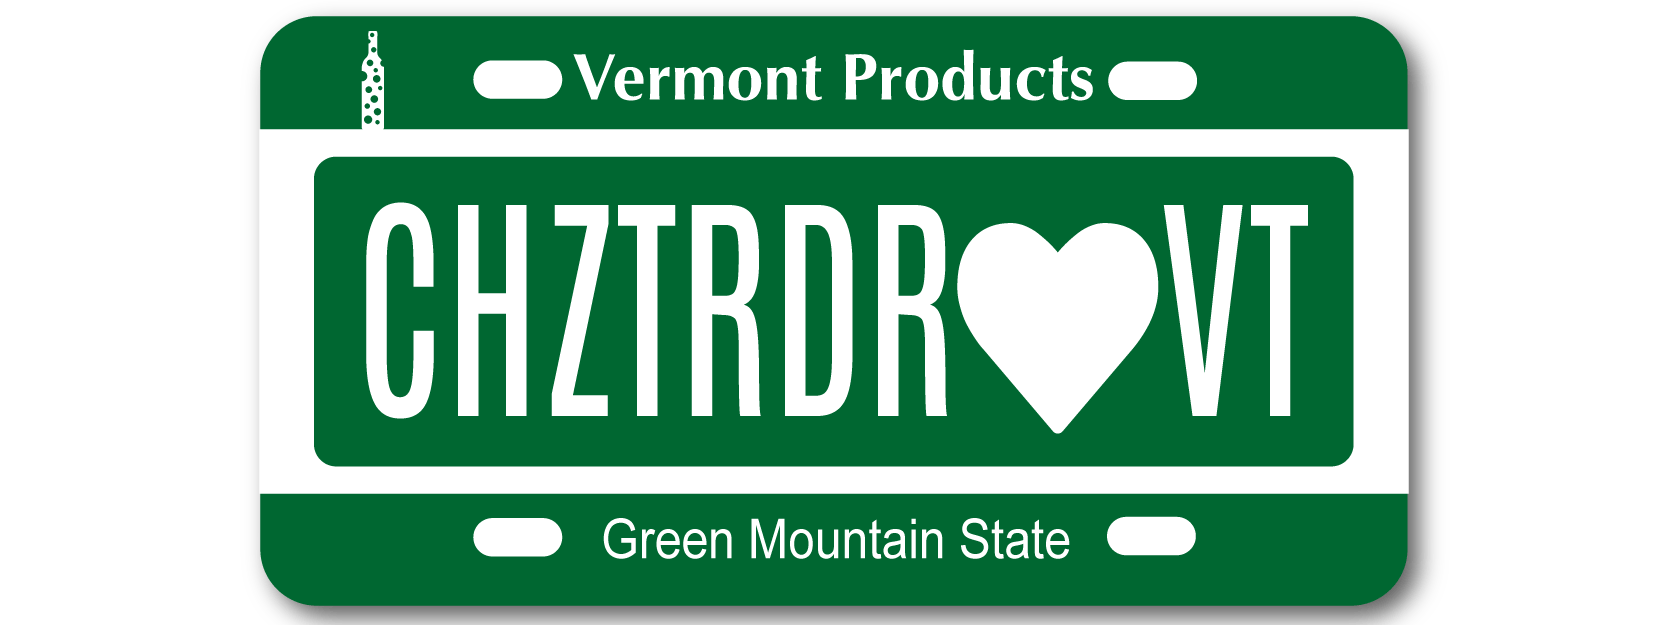 Vermont Products